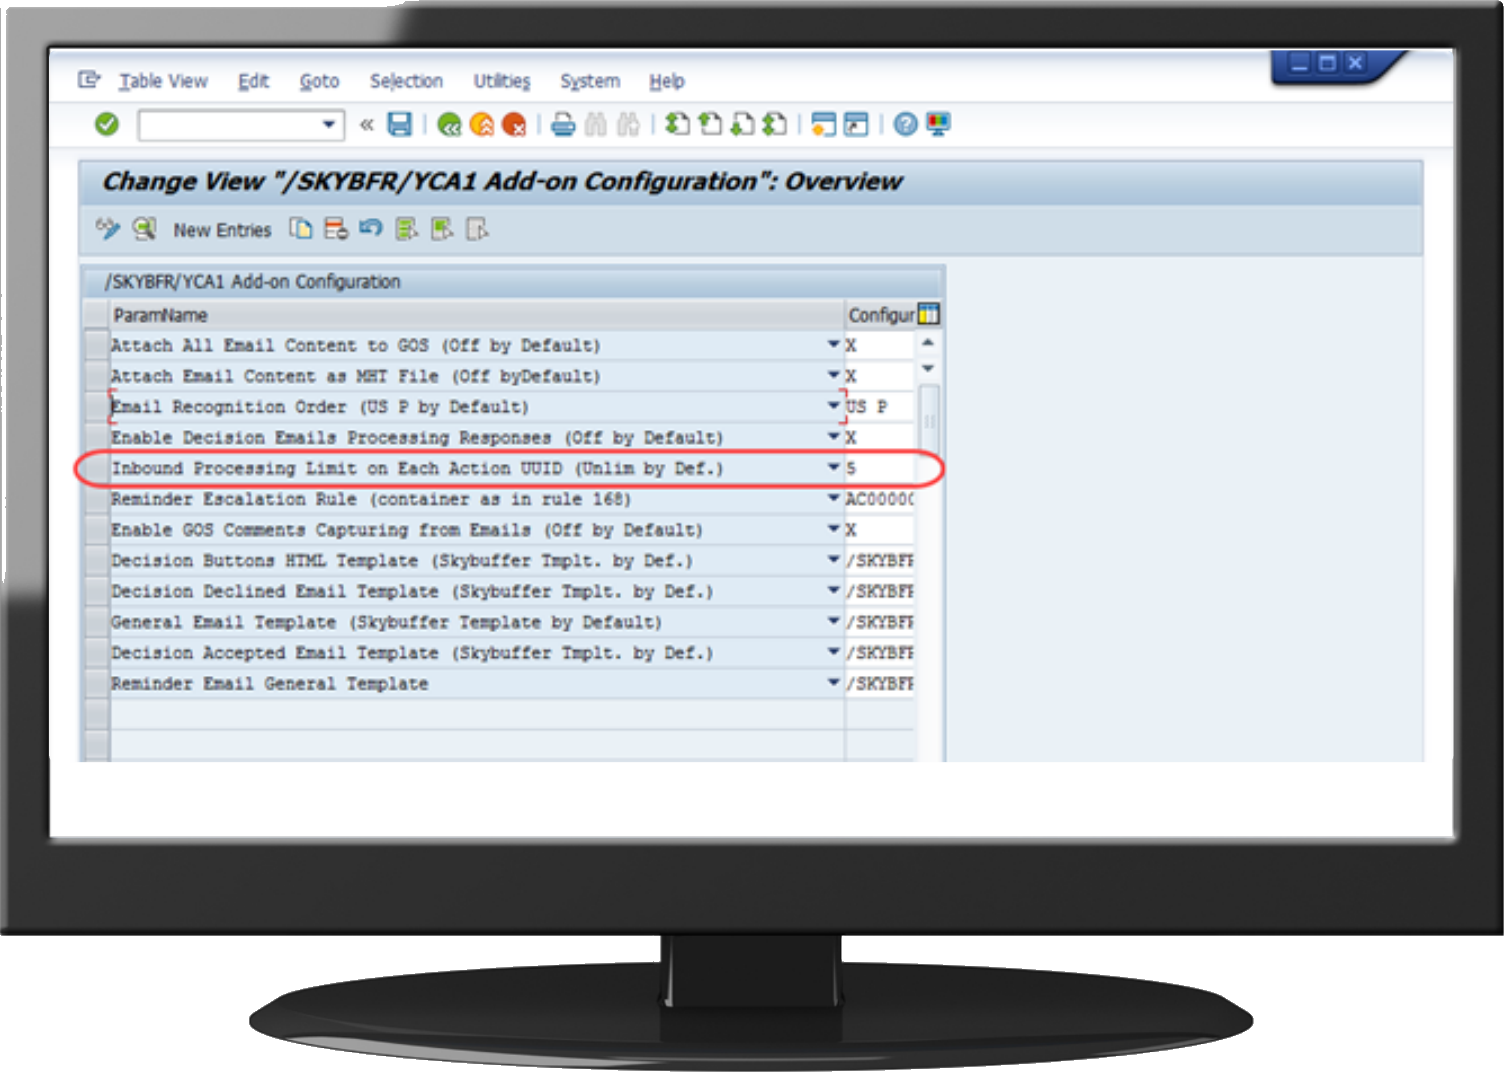 S/4HANA AND SAP ECC FEATURE LIST OF ACTION CARDS APPLICATION – SKYBUFFER